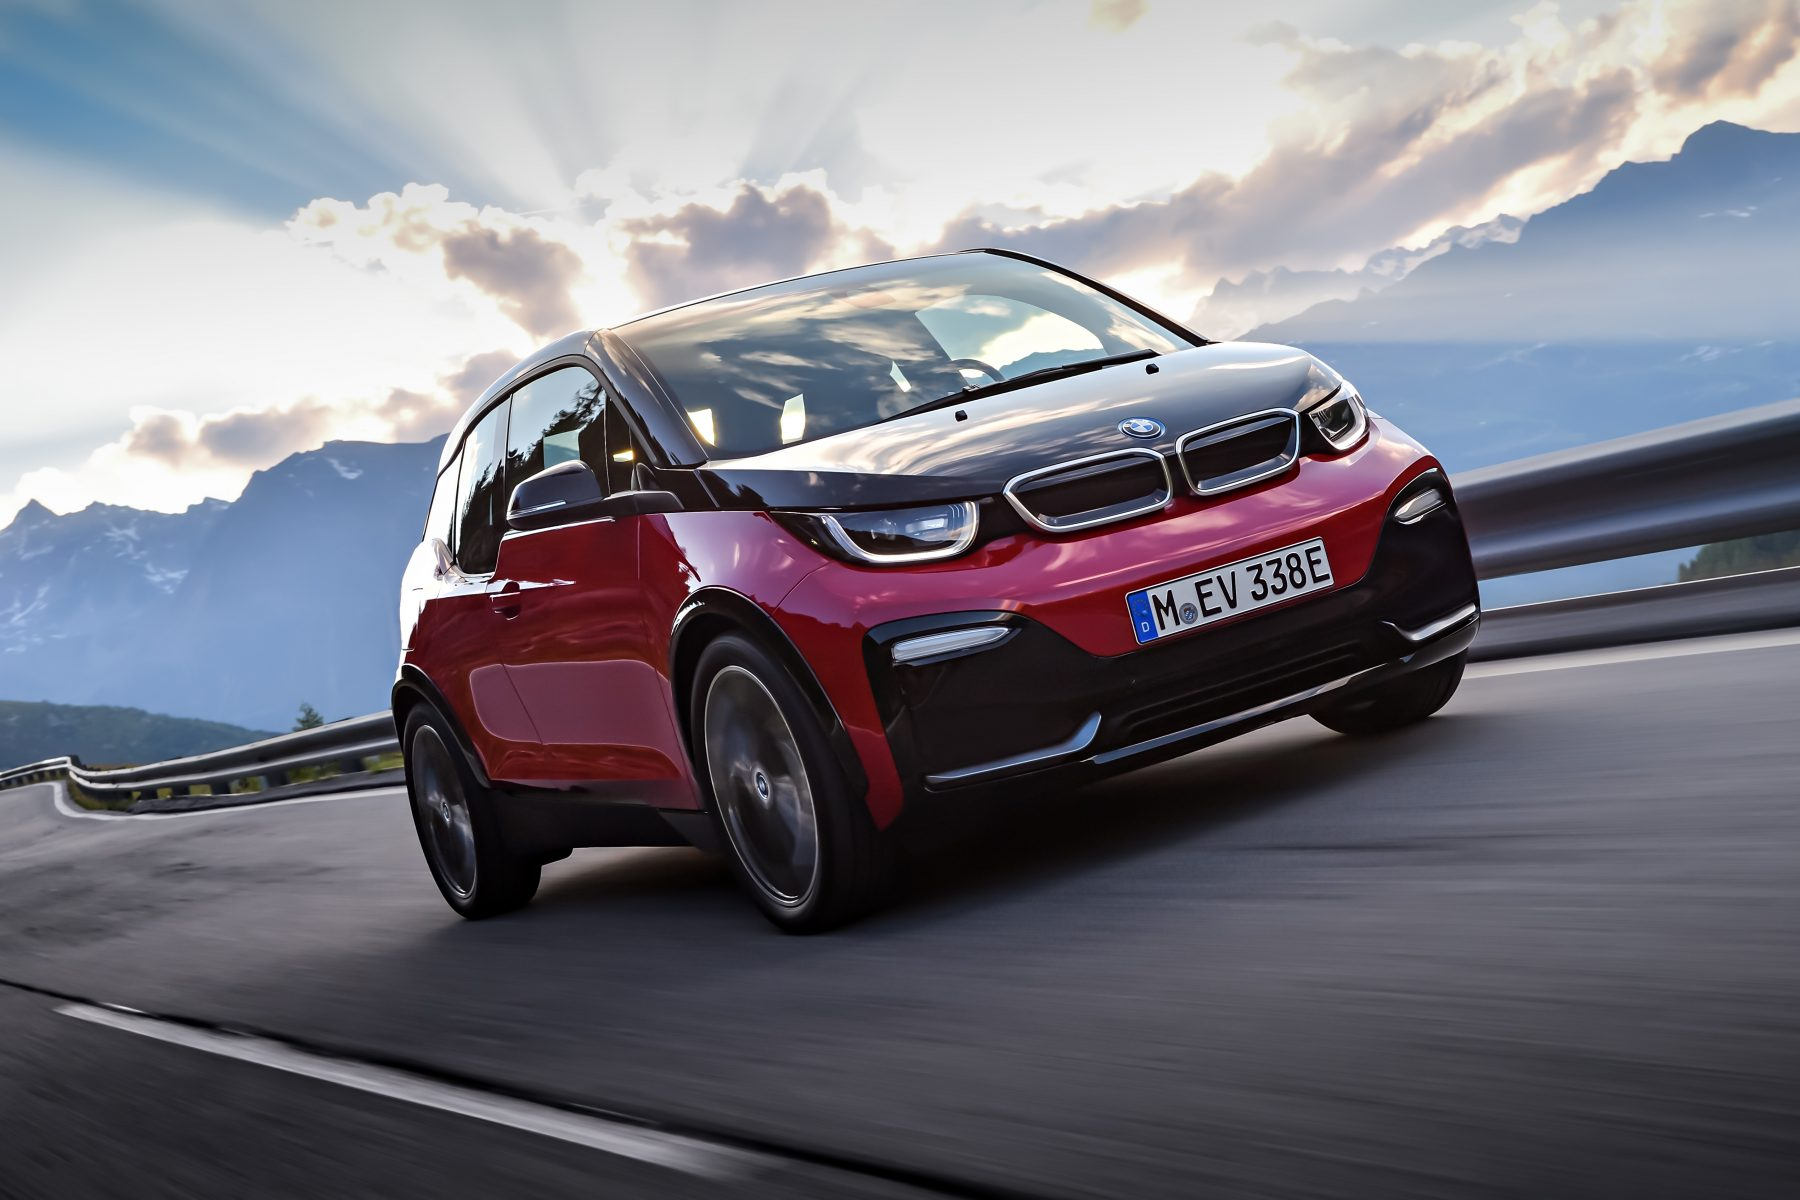 Bmw I3 Battery Upgrade >> Bmw I3 Rumored To Get Battery Cell Upgrade To Push Range